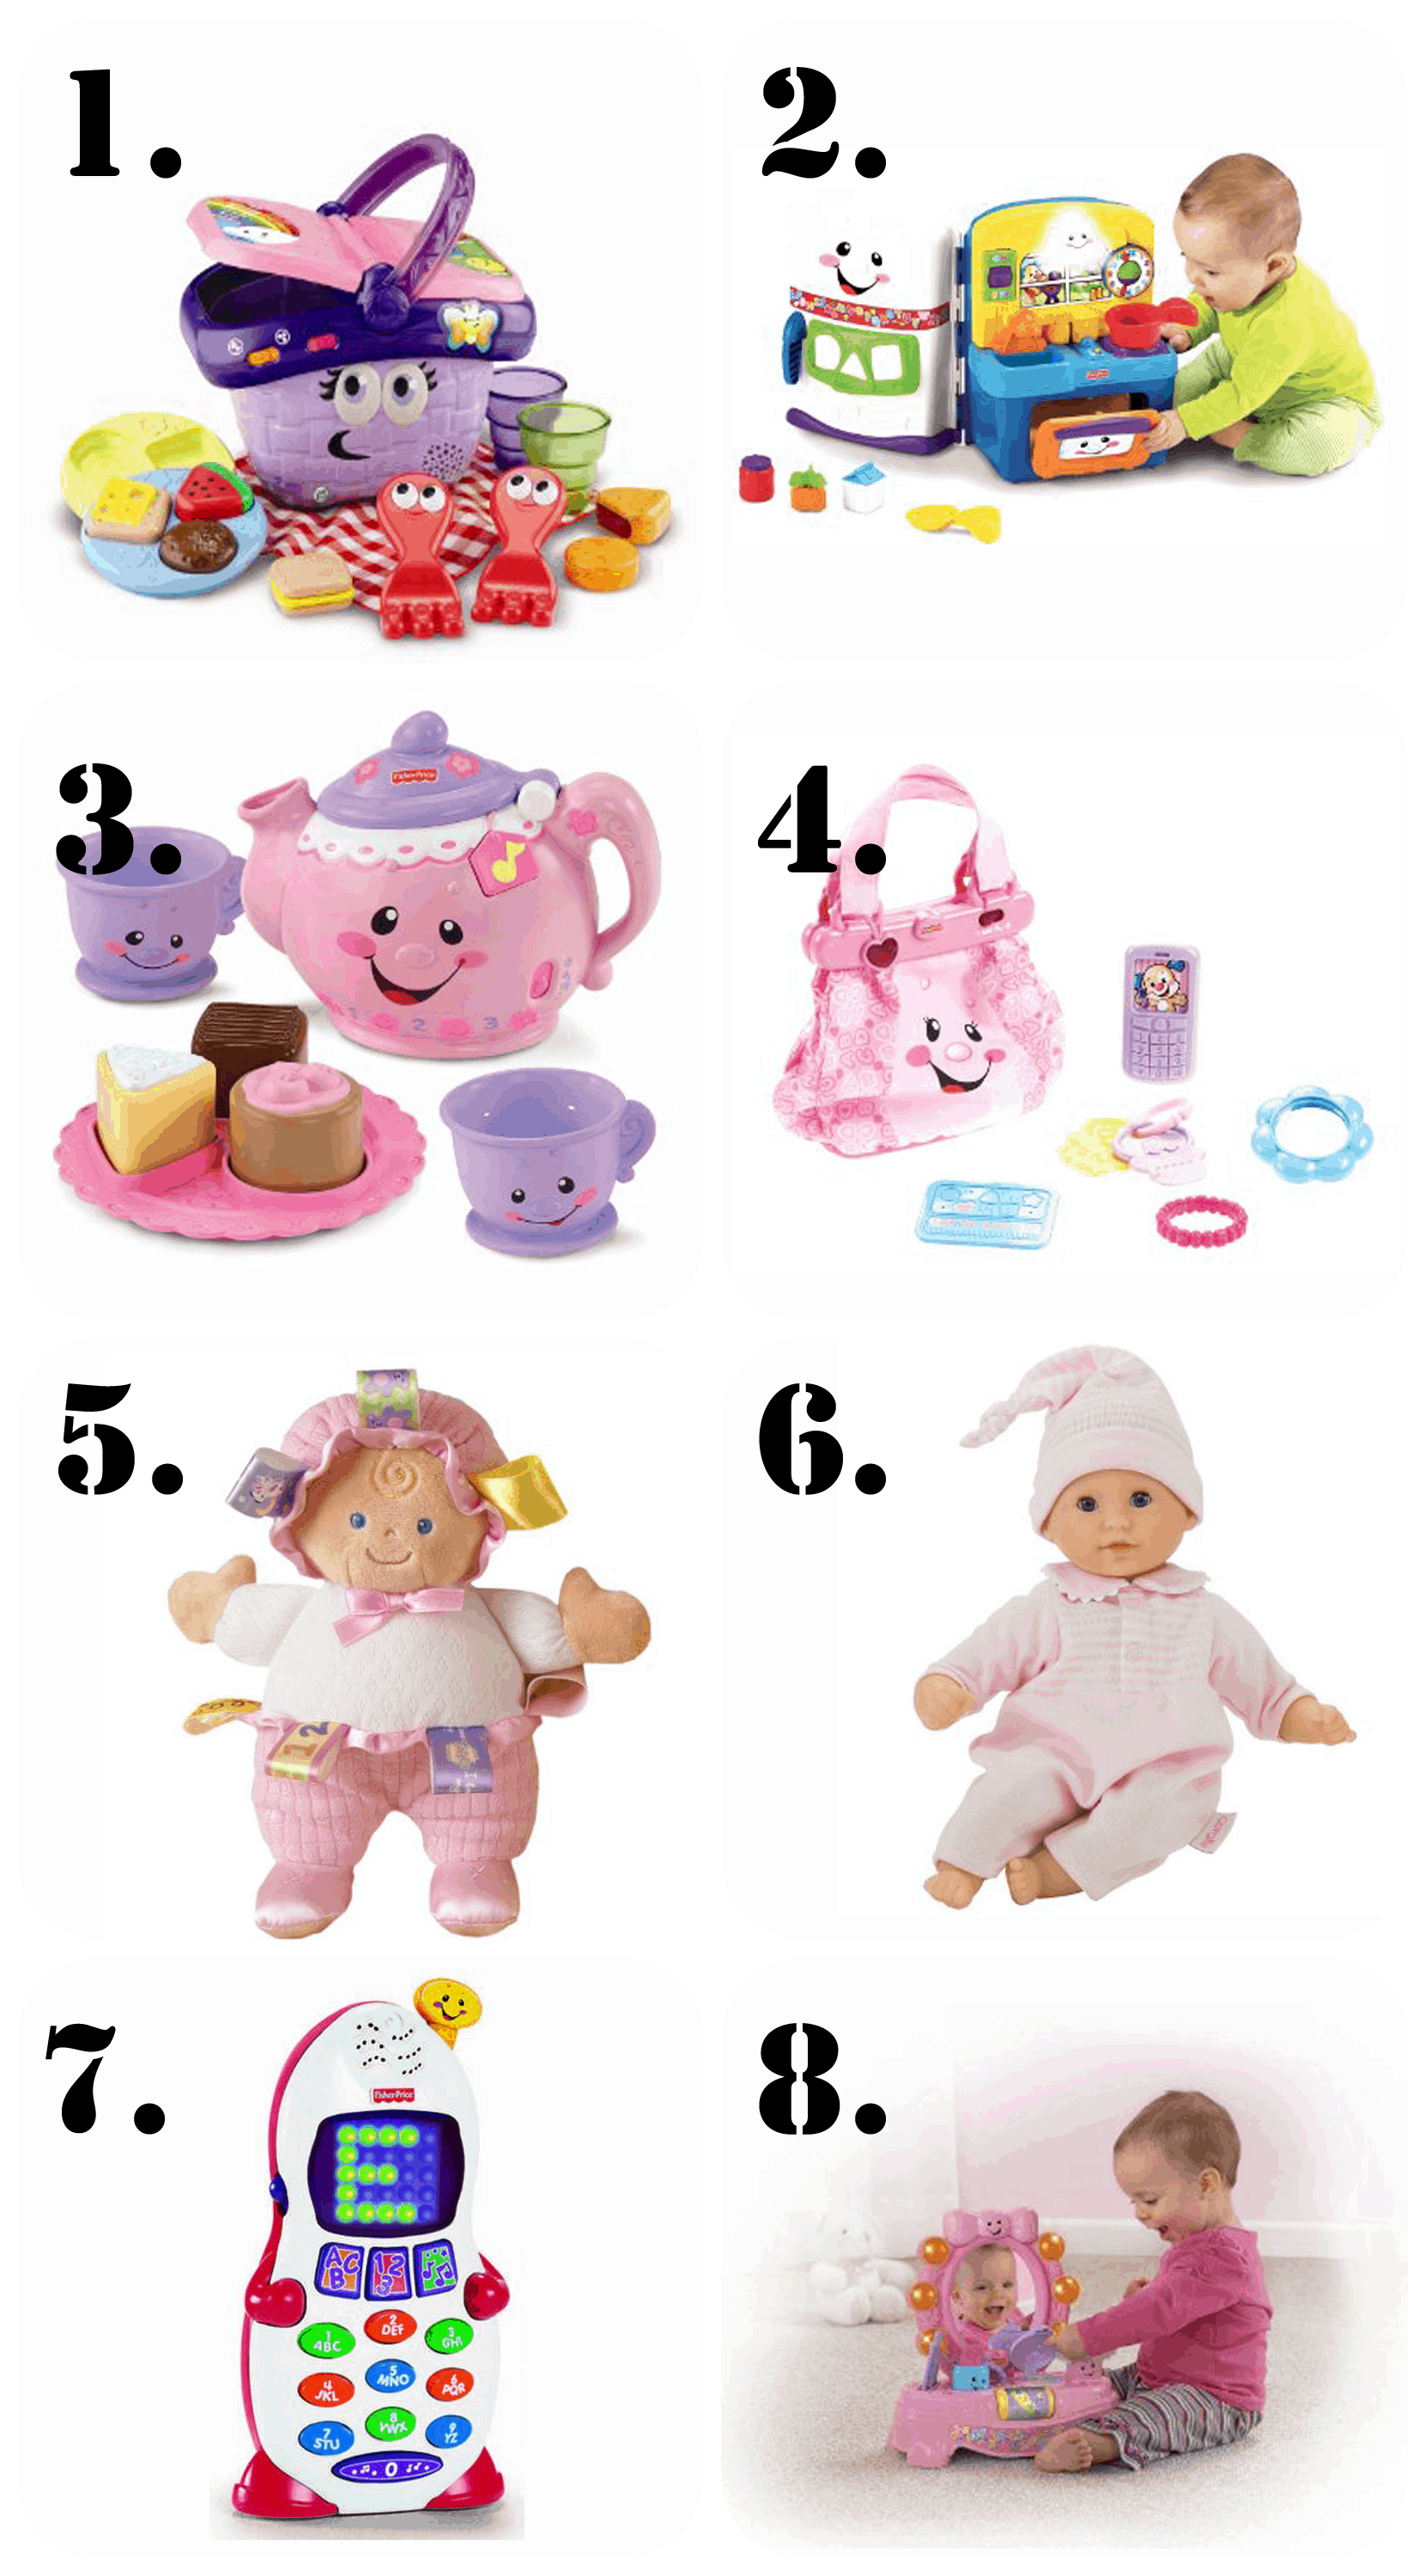 The Ultimate Gift List for a 1 Year Old Girl! • The Pinning Mama